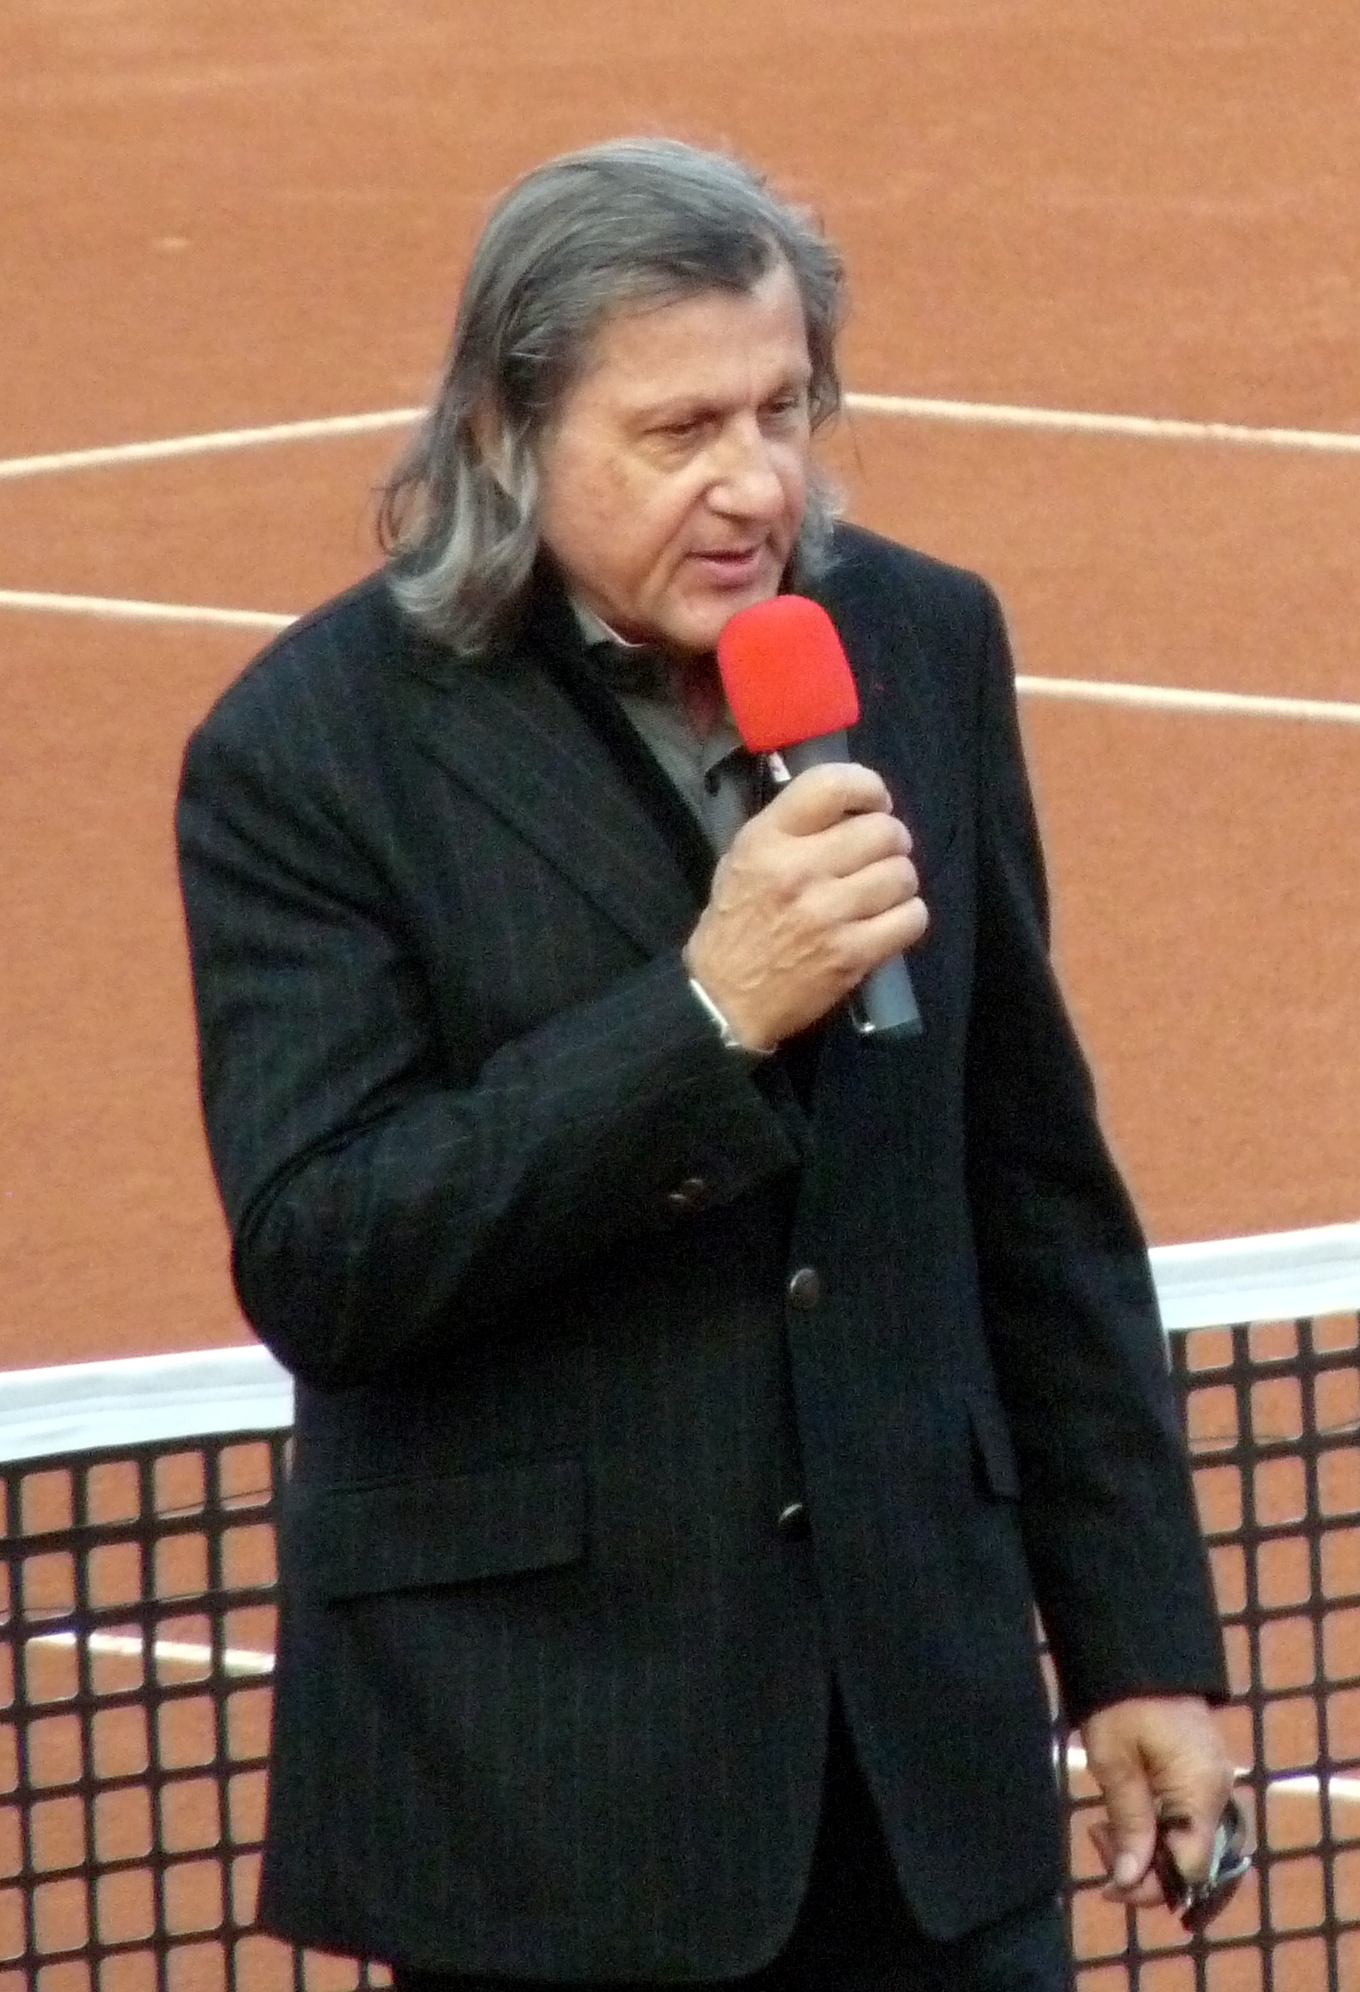 The 72-year old son of father (?) and mother(?) Ilie Nastase in 2018 photo. Ilie Nastase earned a  million dollar salary - leaving the net worth at 15 million in 2018